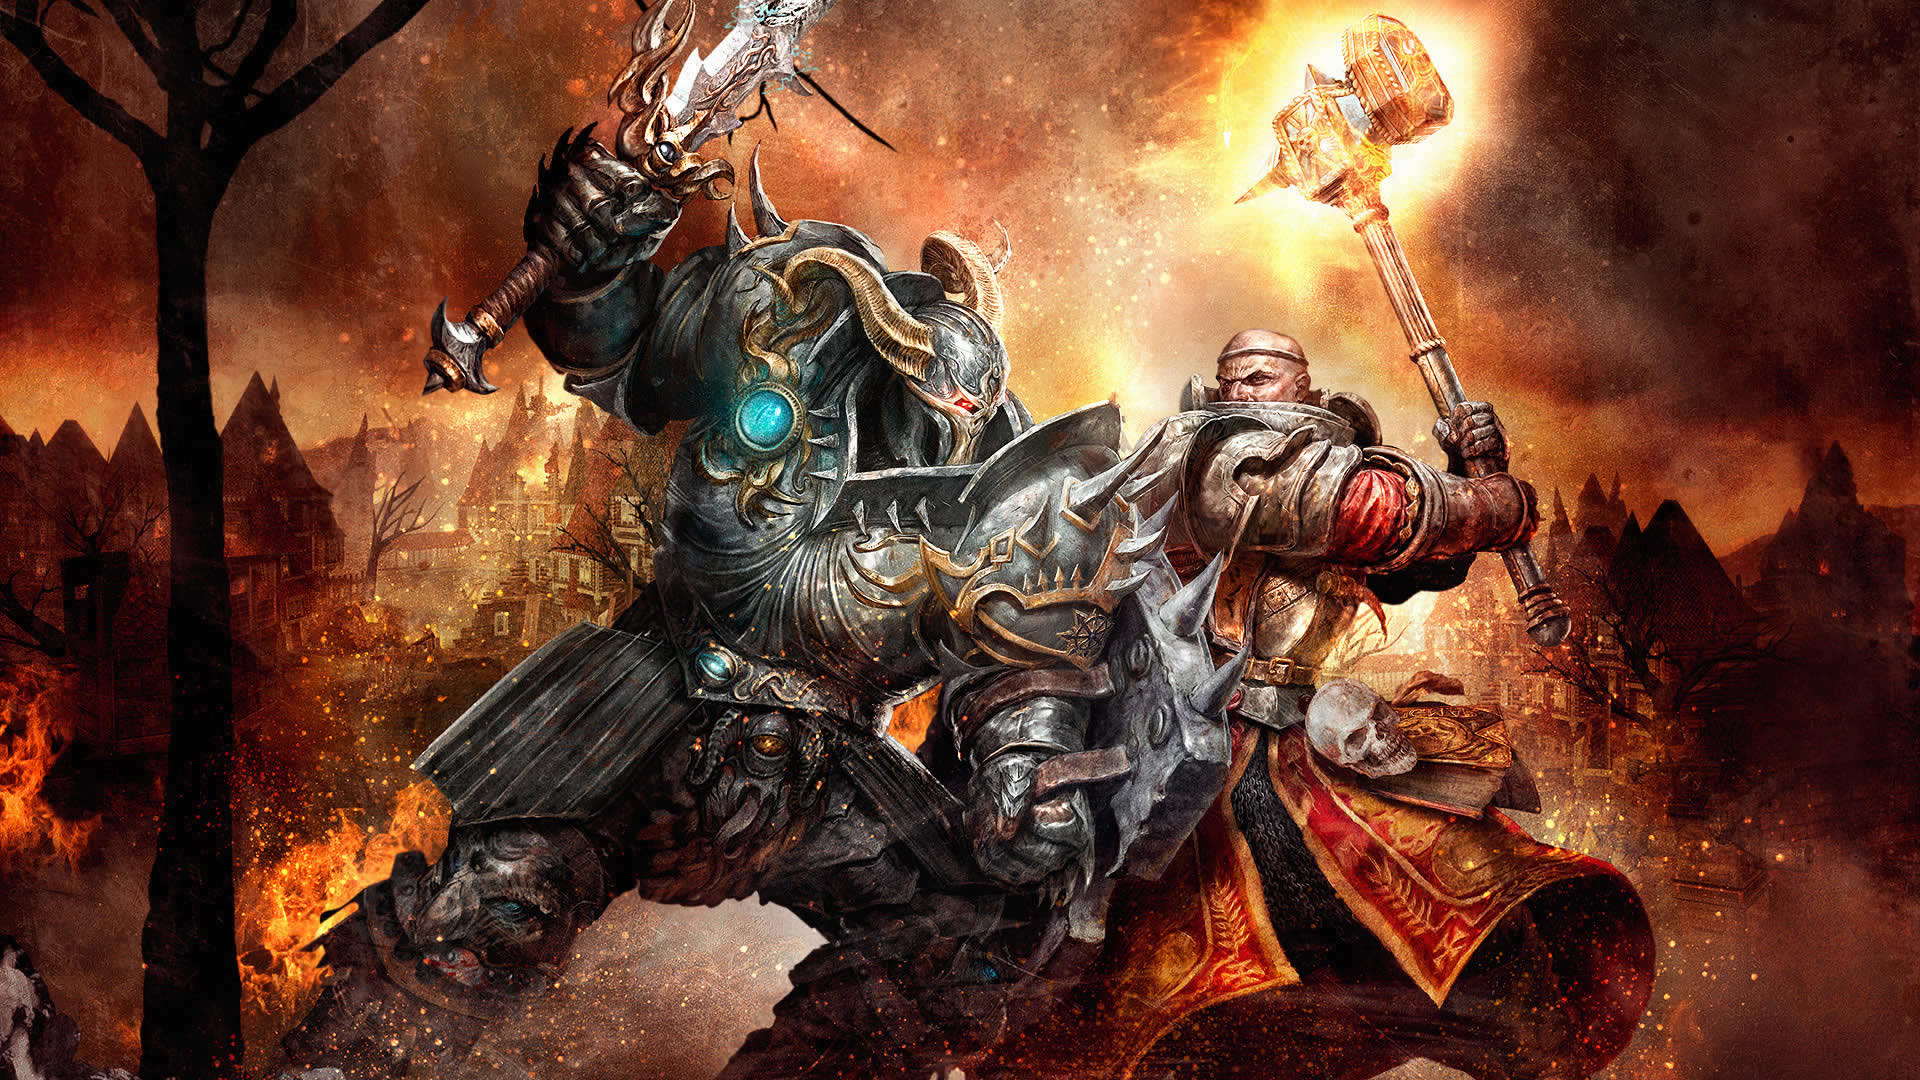 Hellgate London Game Wallpapers HD Wallpapers 1920x1080